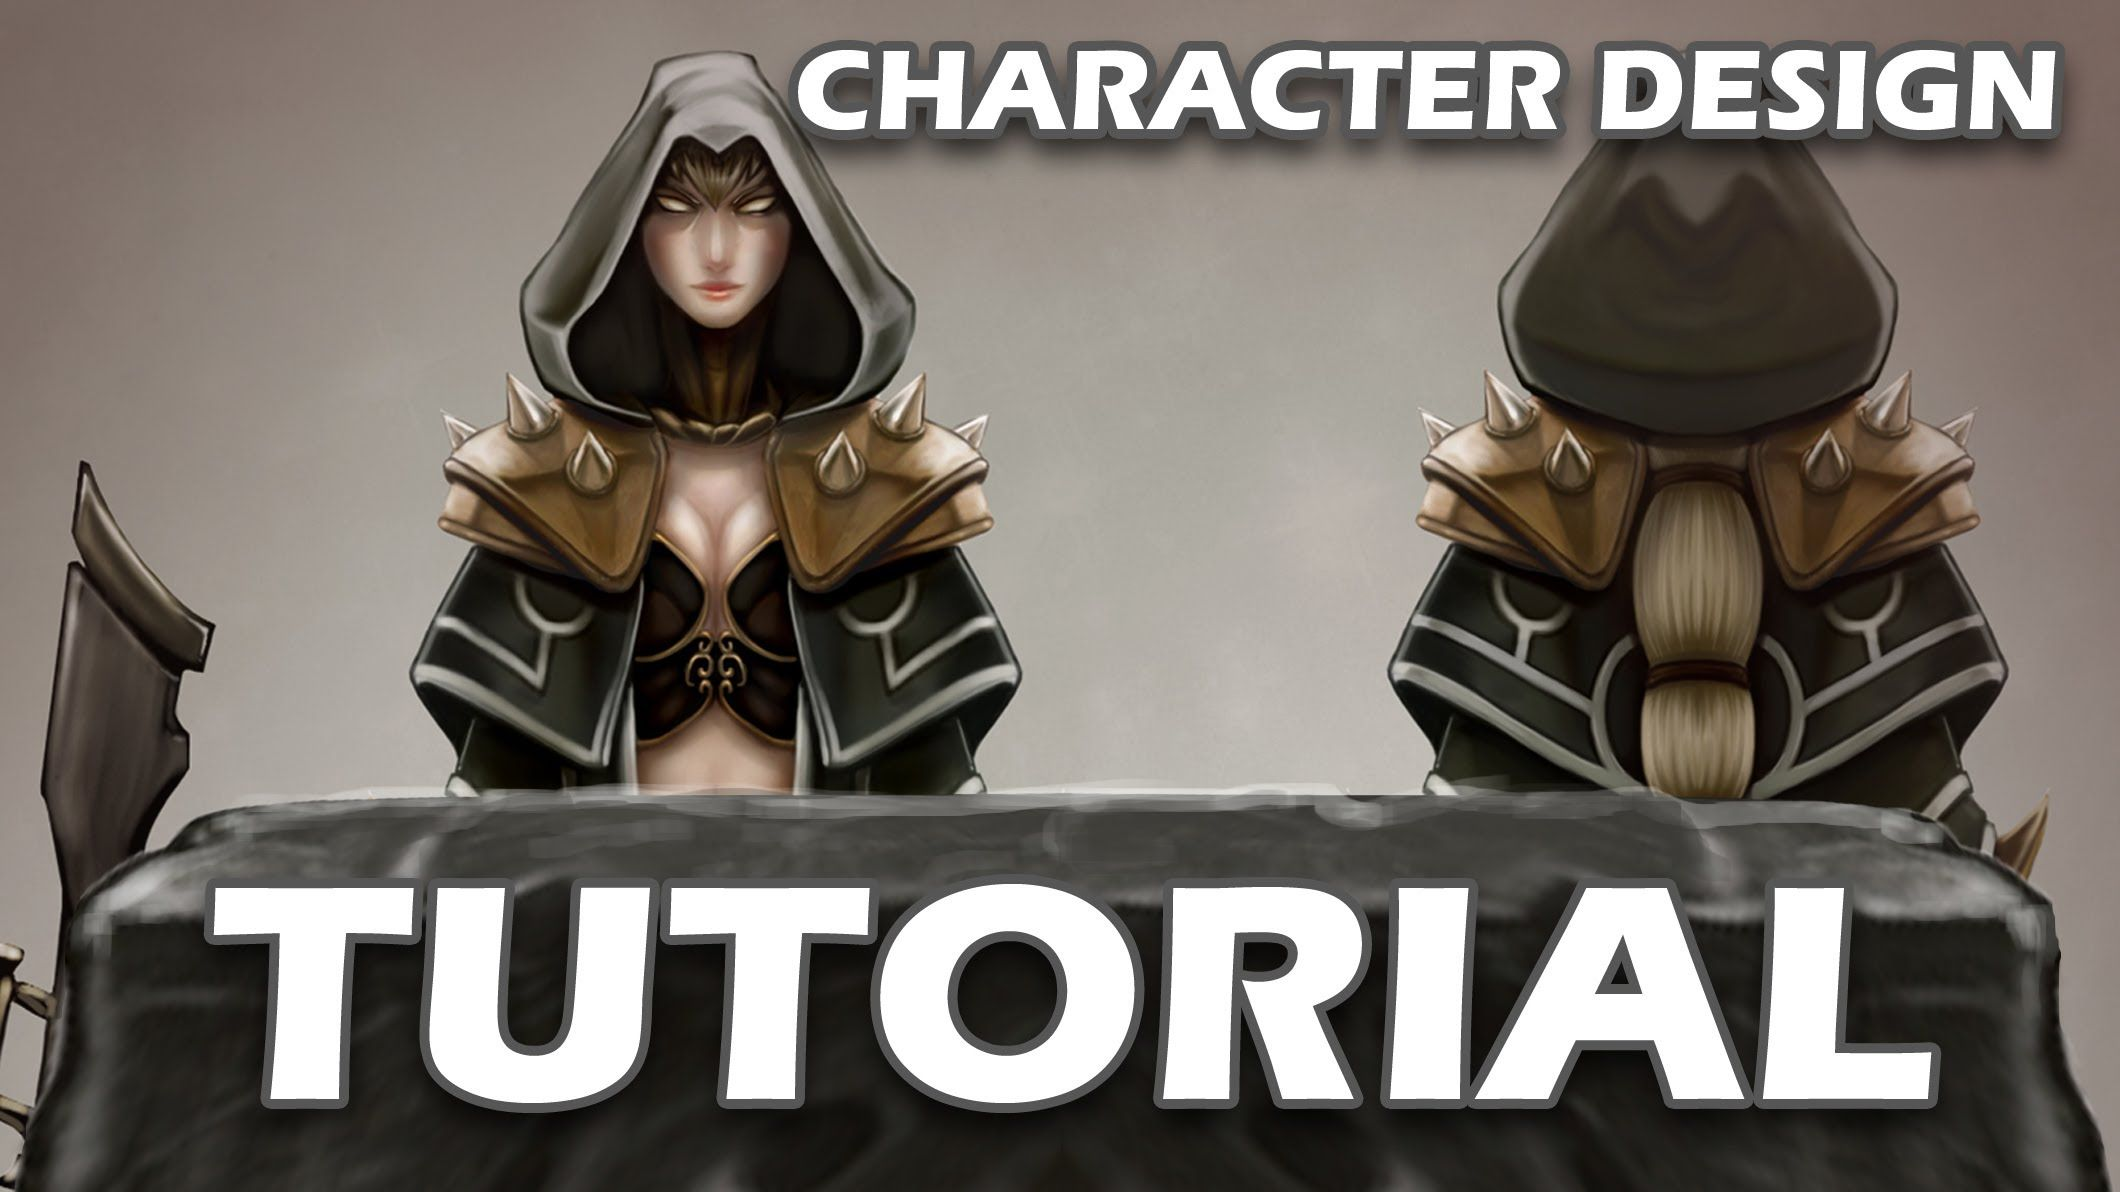 Game Character Design Tips : A tutorial on my method of creating character designs for games. the